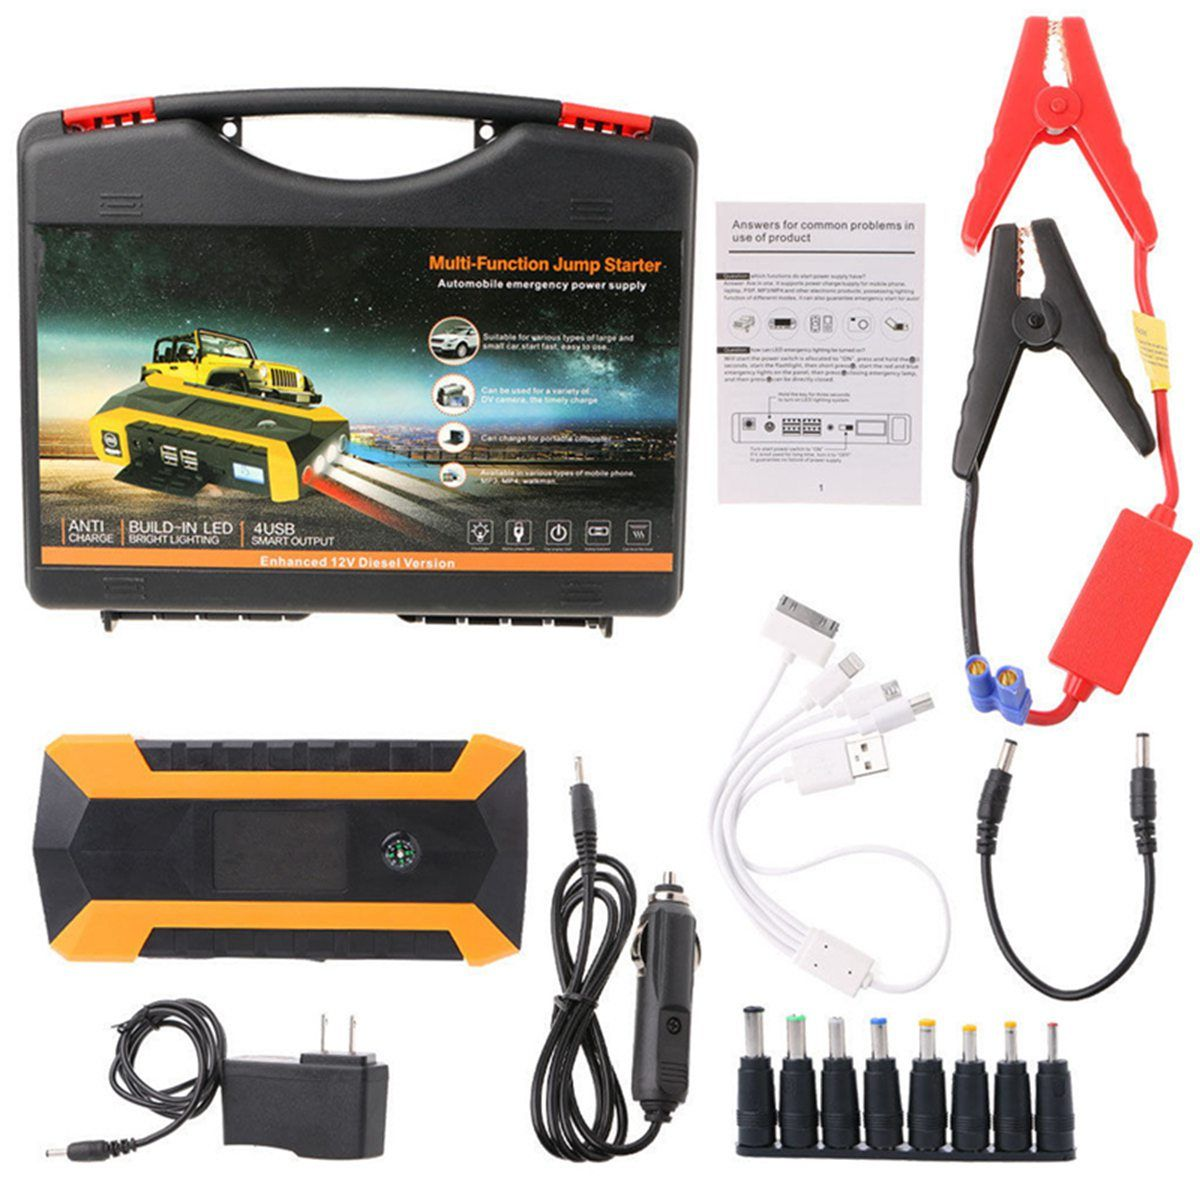 89800mAh Car Jump Starter 12V 4USB 600A Portable Car Battery Booster Charger Booster Power Bank Starting Device Car Starter